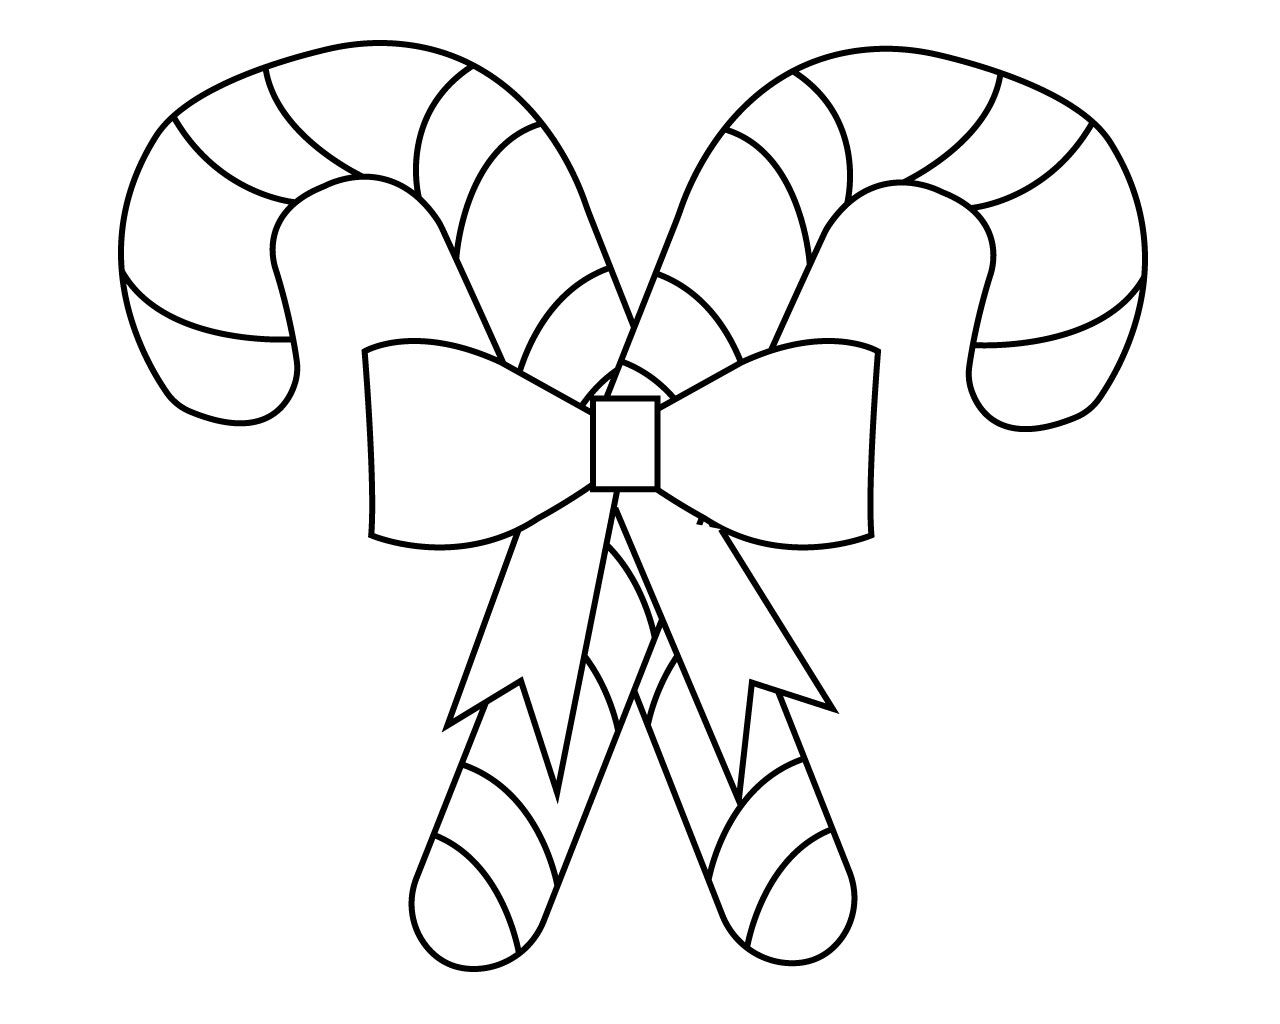 candy cane pictures to color christmas candy canes coloring pages printable cane to color candy pictures